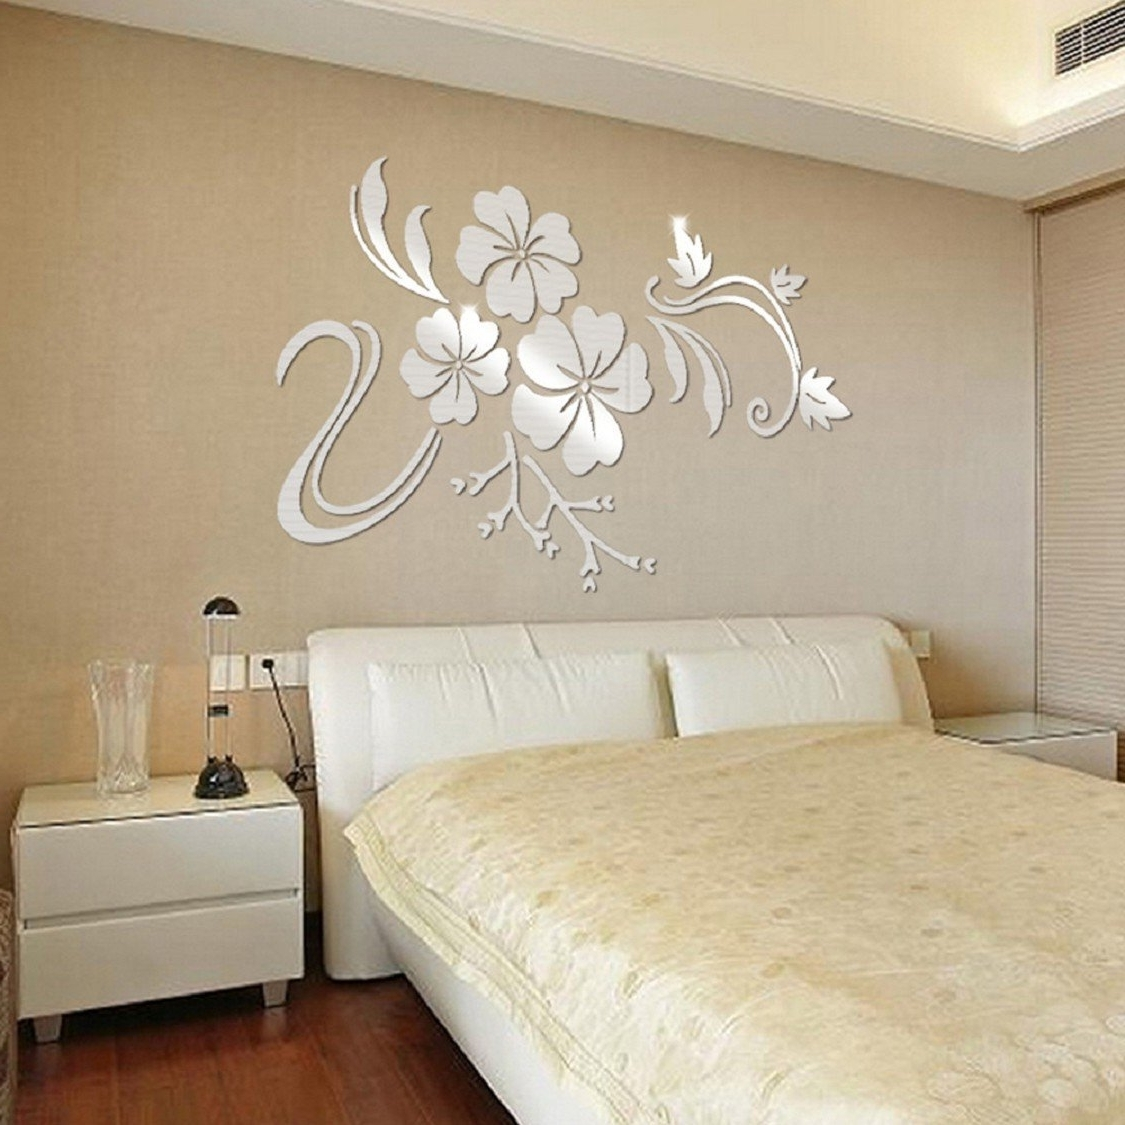 Well Known Diy 3d Wall Art Decor In Ikevan 1set Acrylic Art 3d Mirror Flower Wall Stickers Diy Home (View 14 of 15)